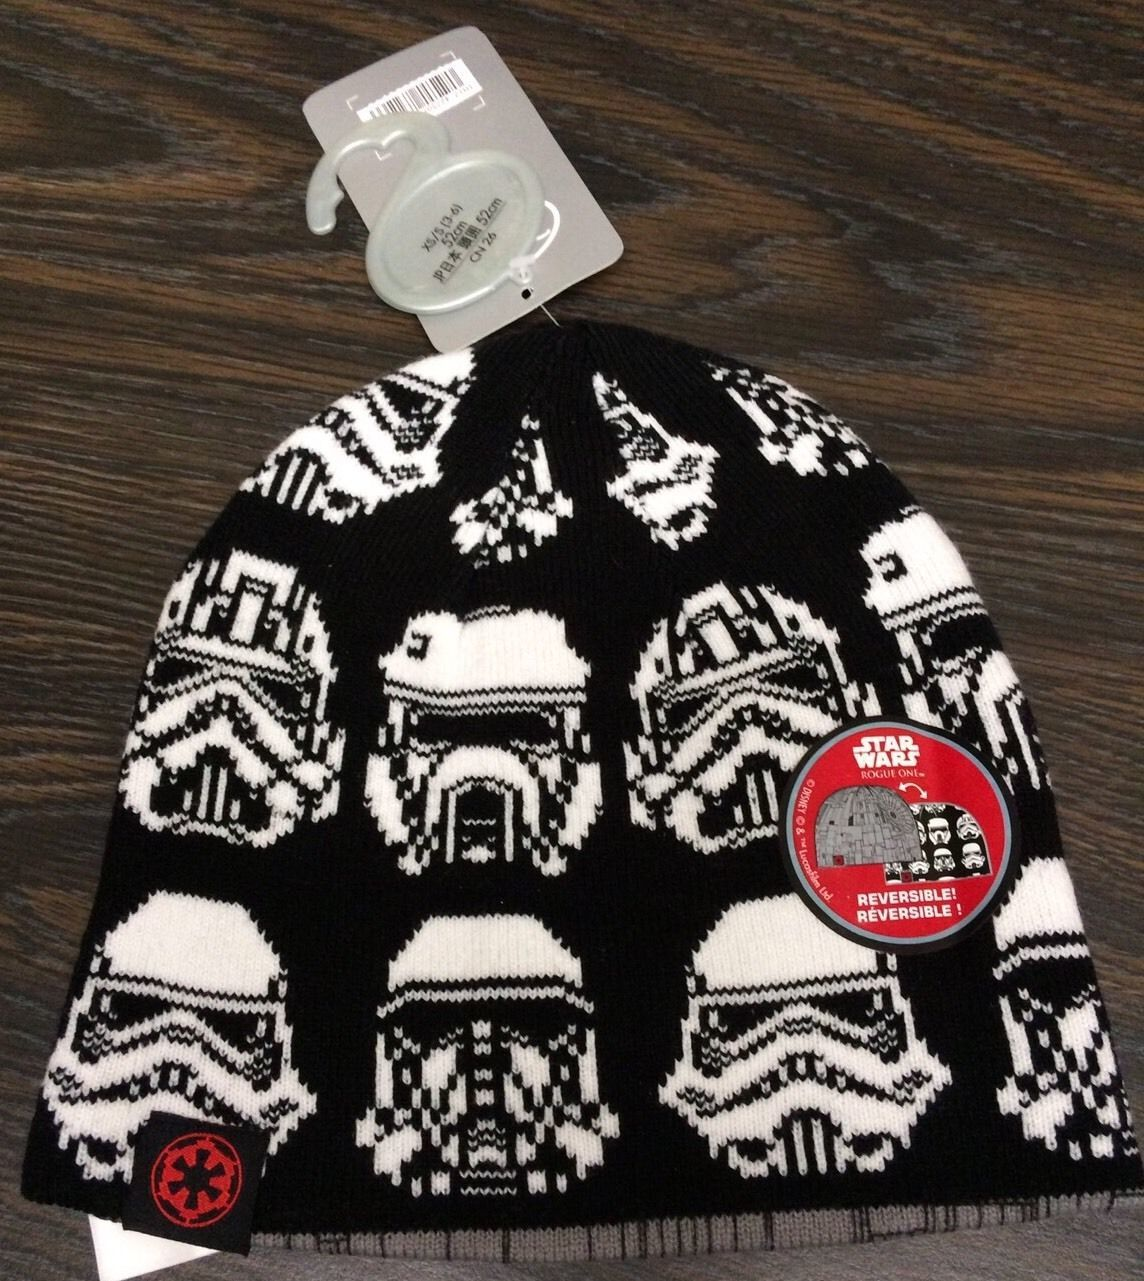 Primary image for Disney Store Star Wars Stormtrooper Reversible Beanie Kids Hat sz XS S 3-6